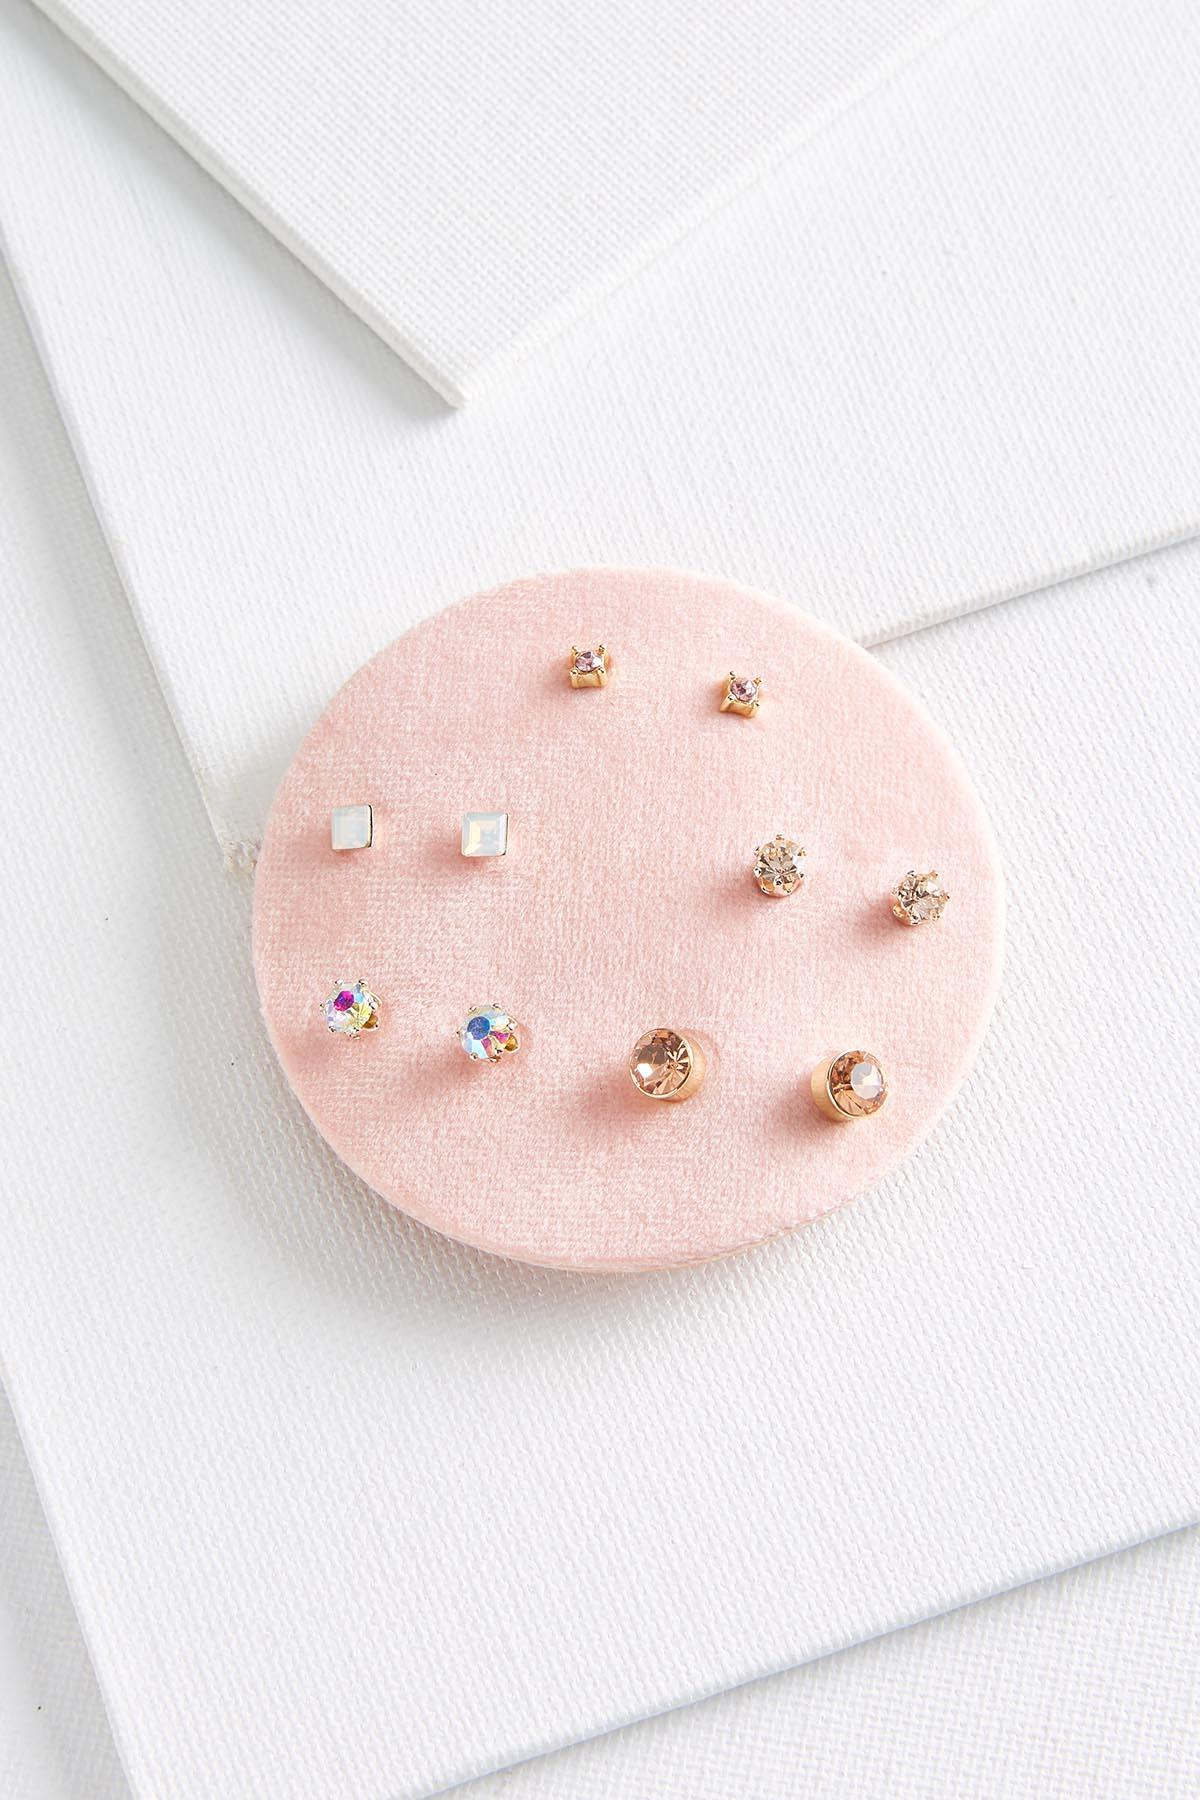 Tiny Gold Stud Set